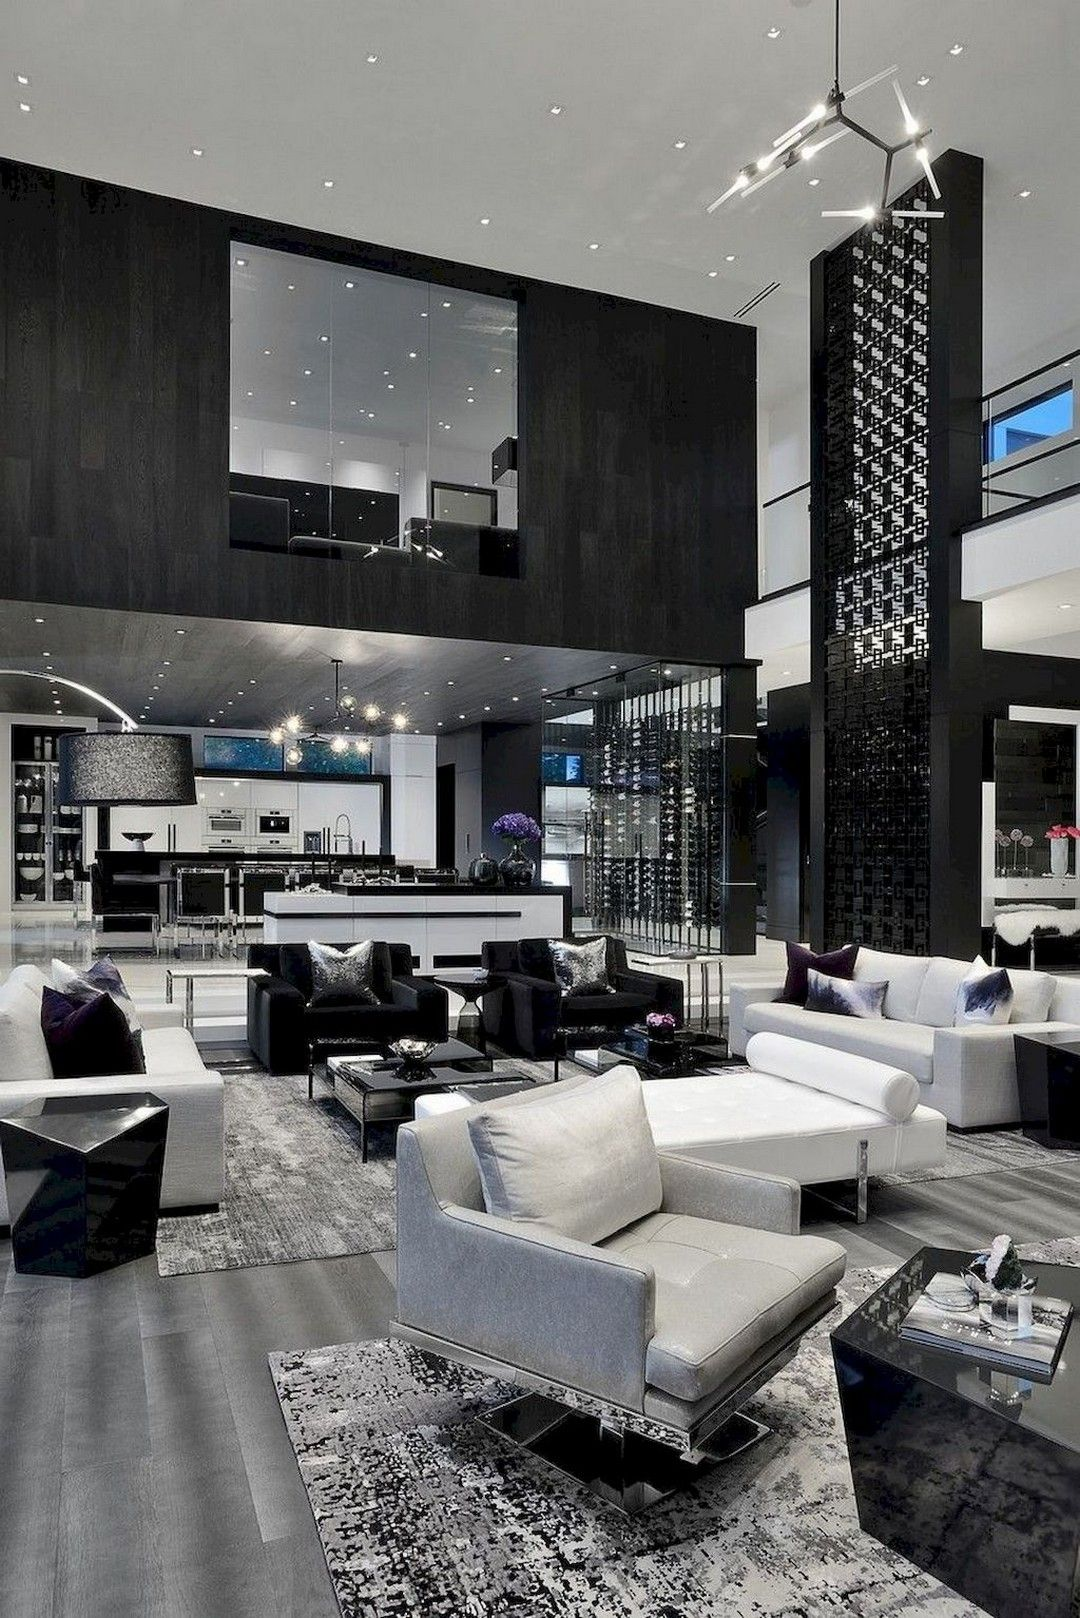 What Do You Think About This Fascinating Home Interior Design Modern Luxury Interior Luxury House Designs Luxury Homes Interior